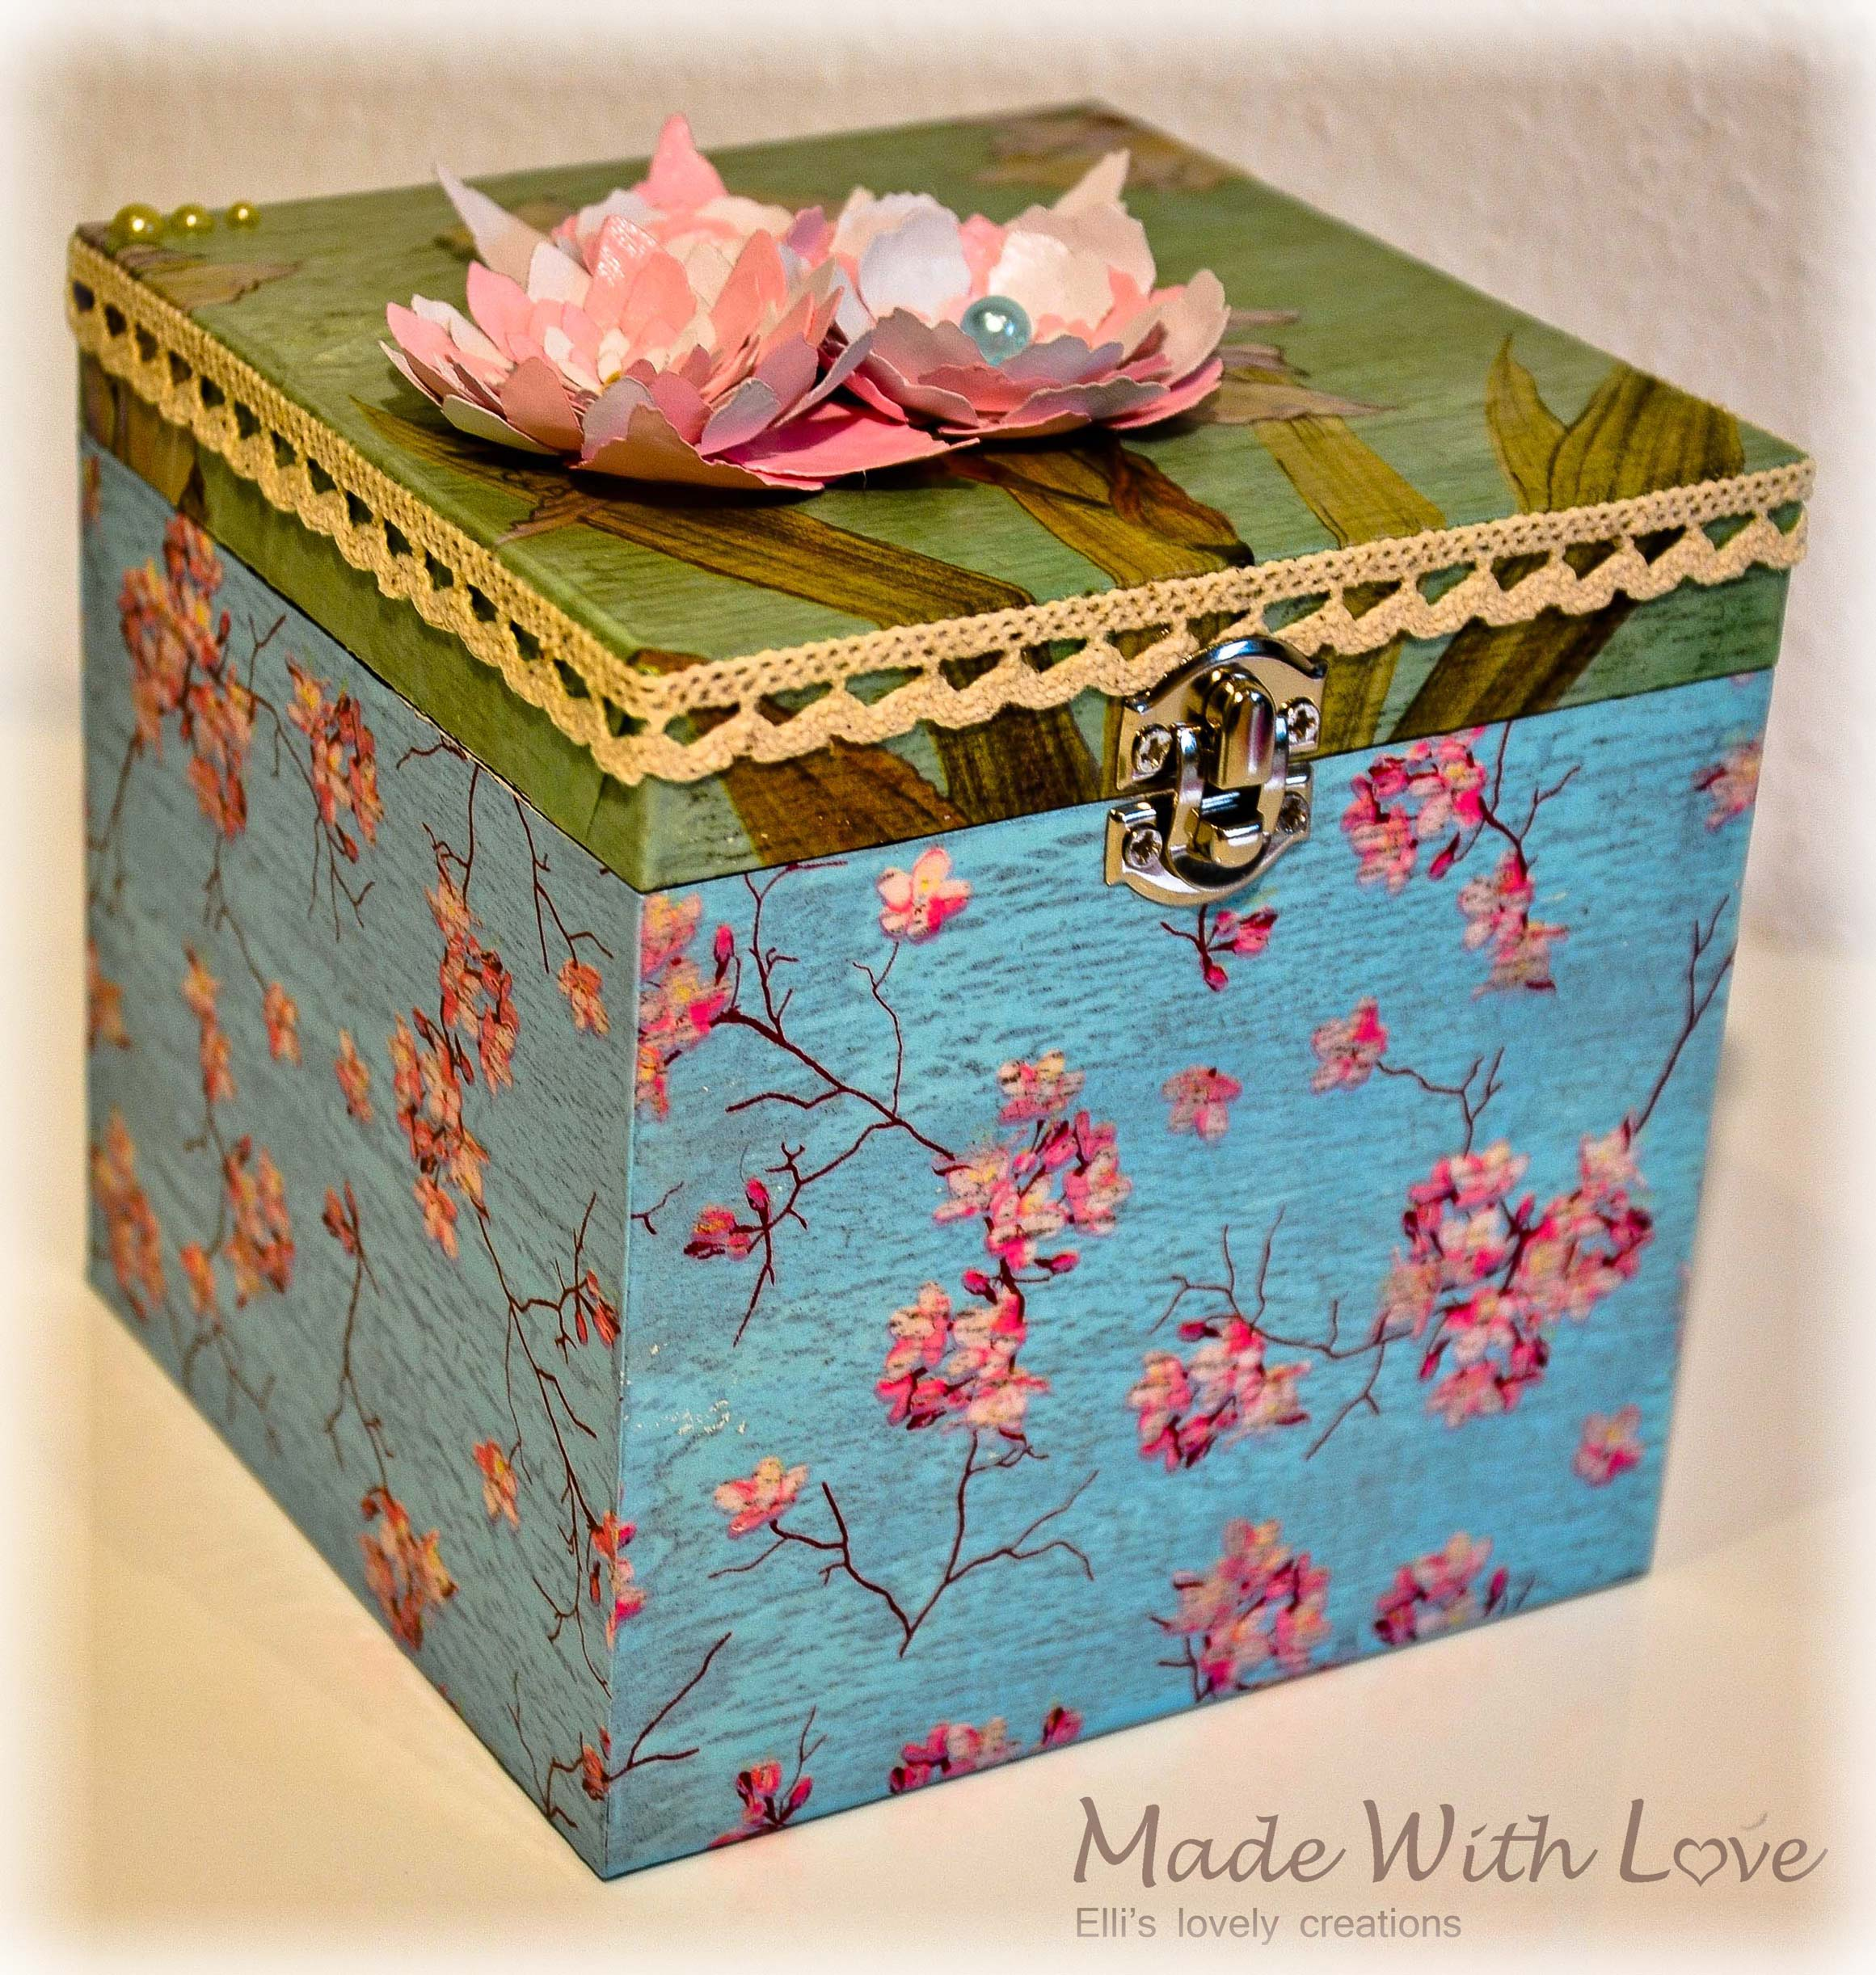 Wooden Jewelry Box II / Decoupage & Crackle Paint Technique